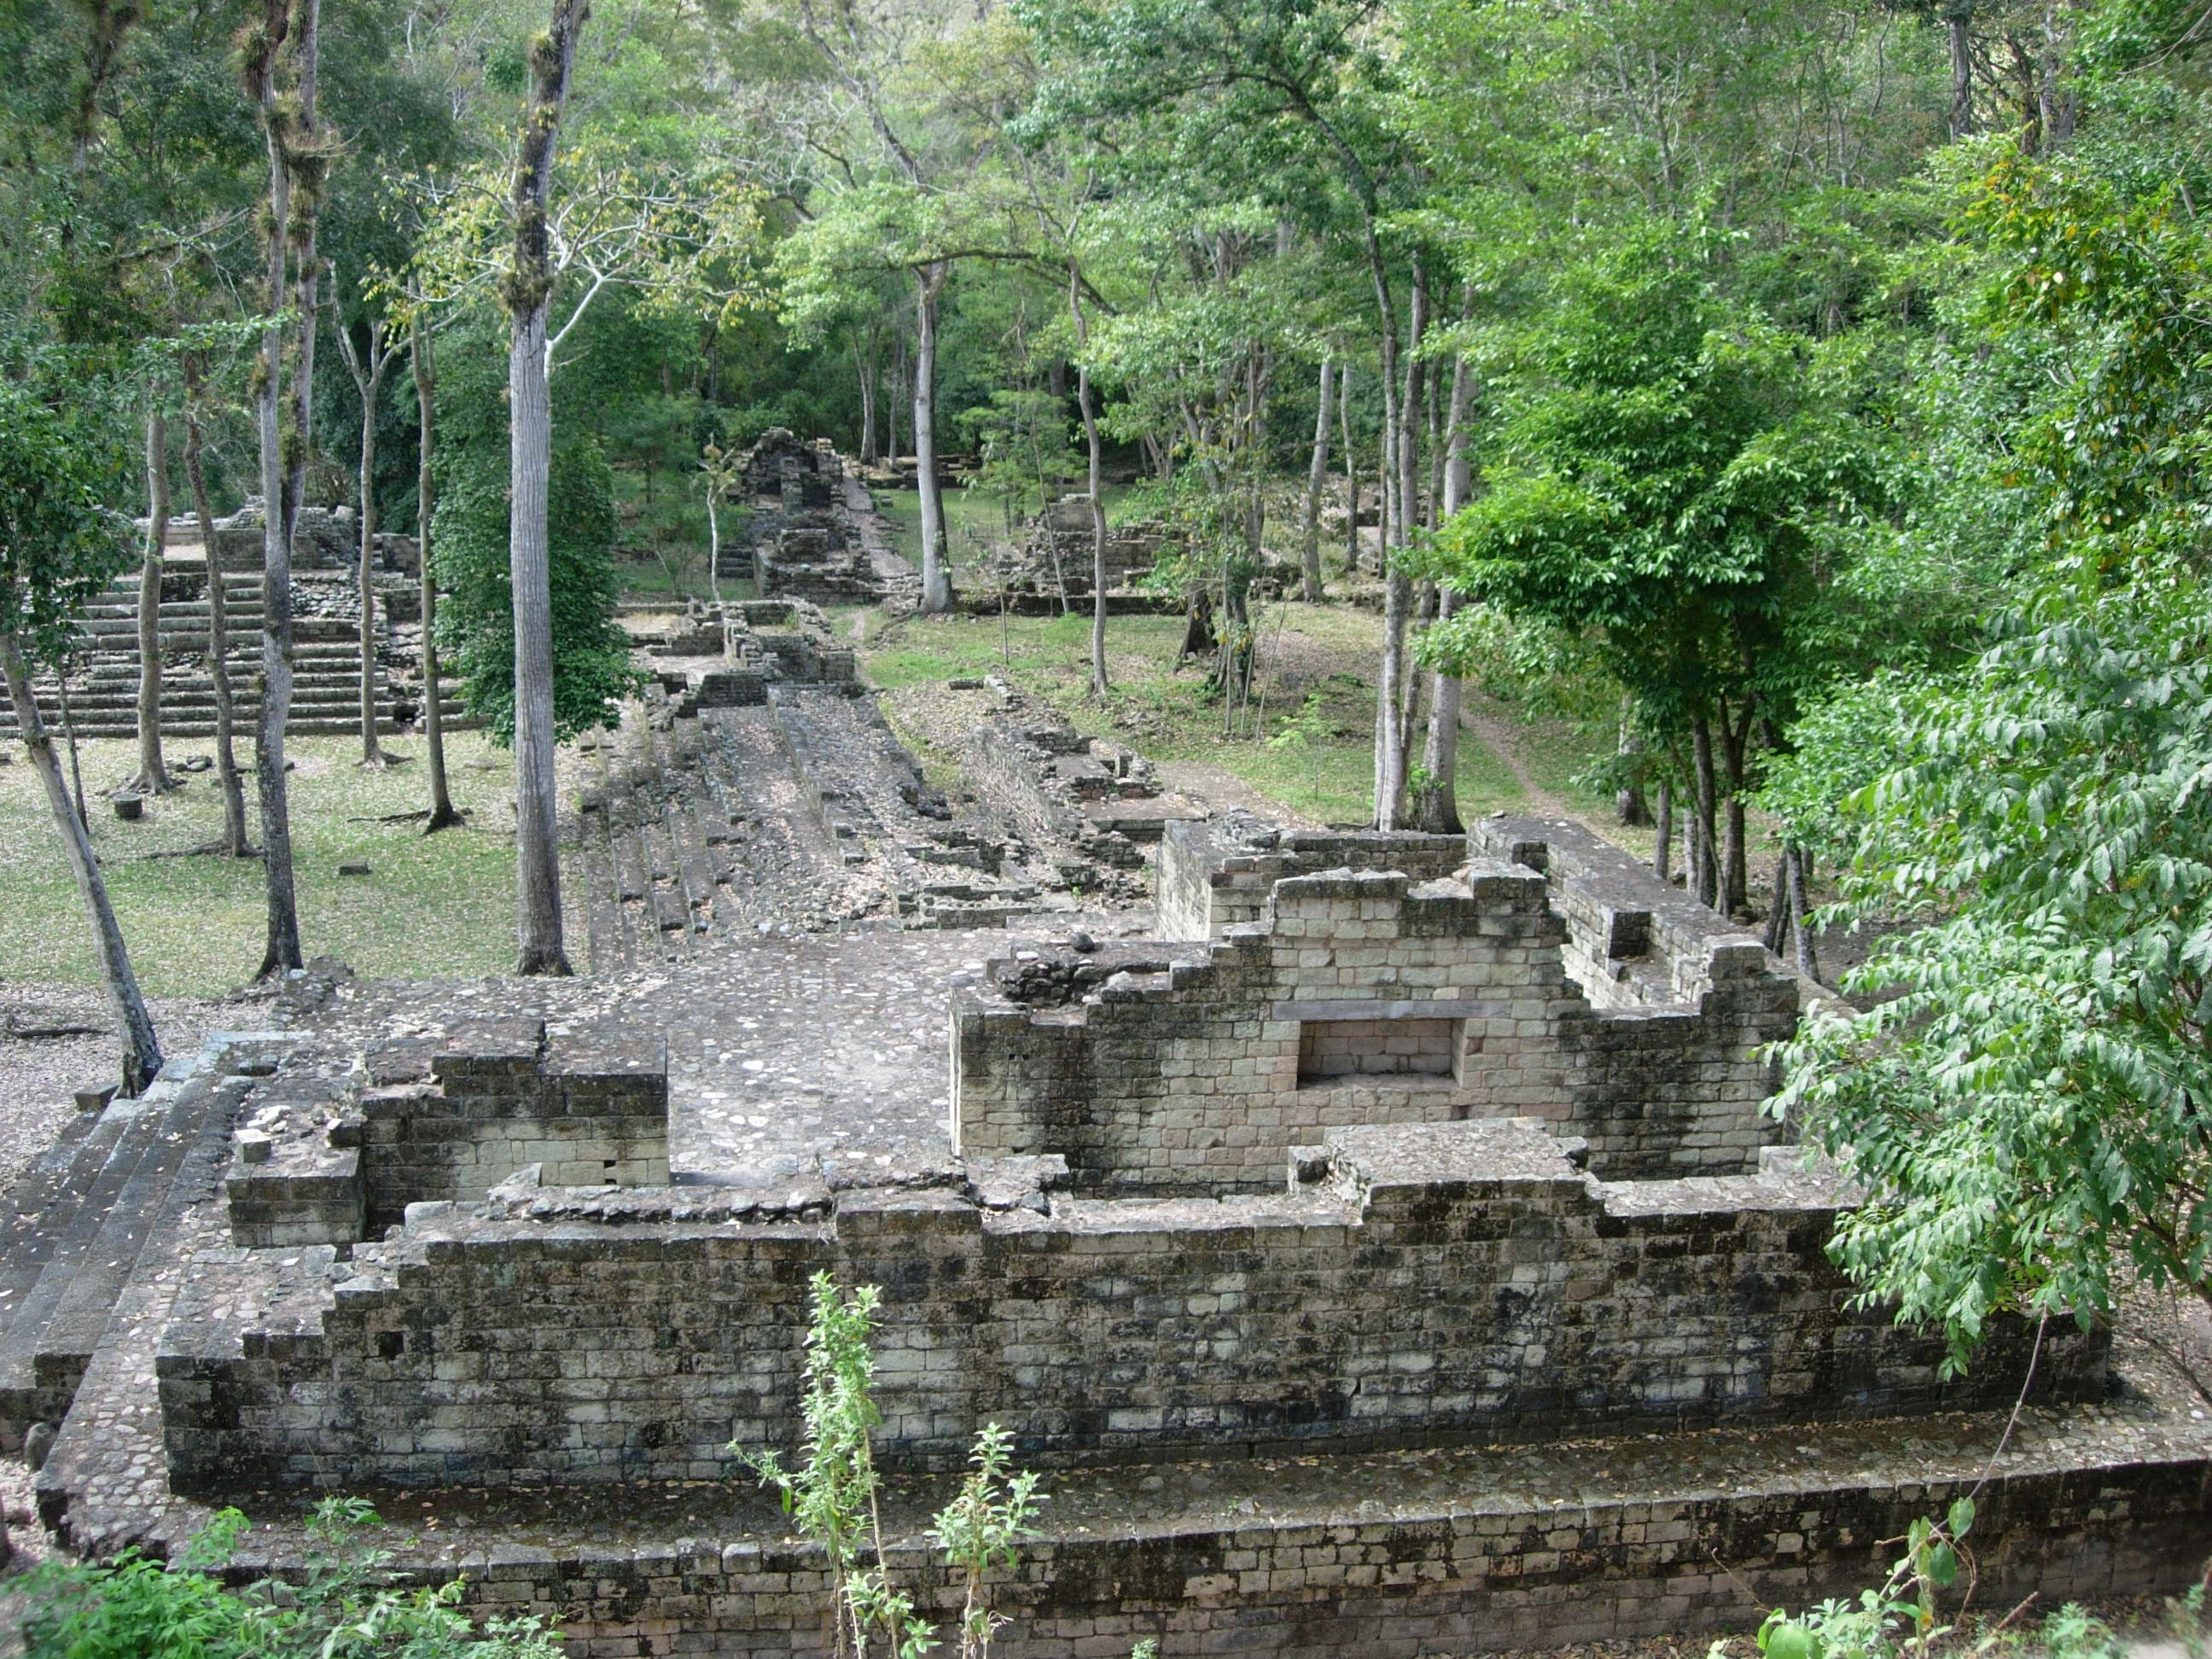 Copán is an archaeological site of the Maya civilization